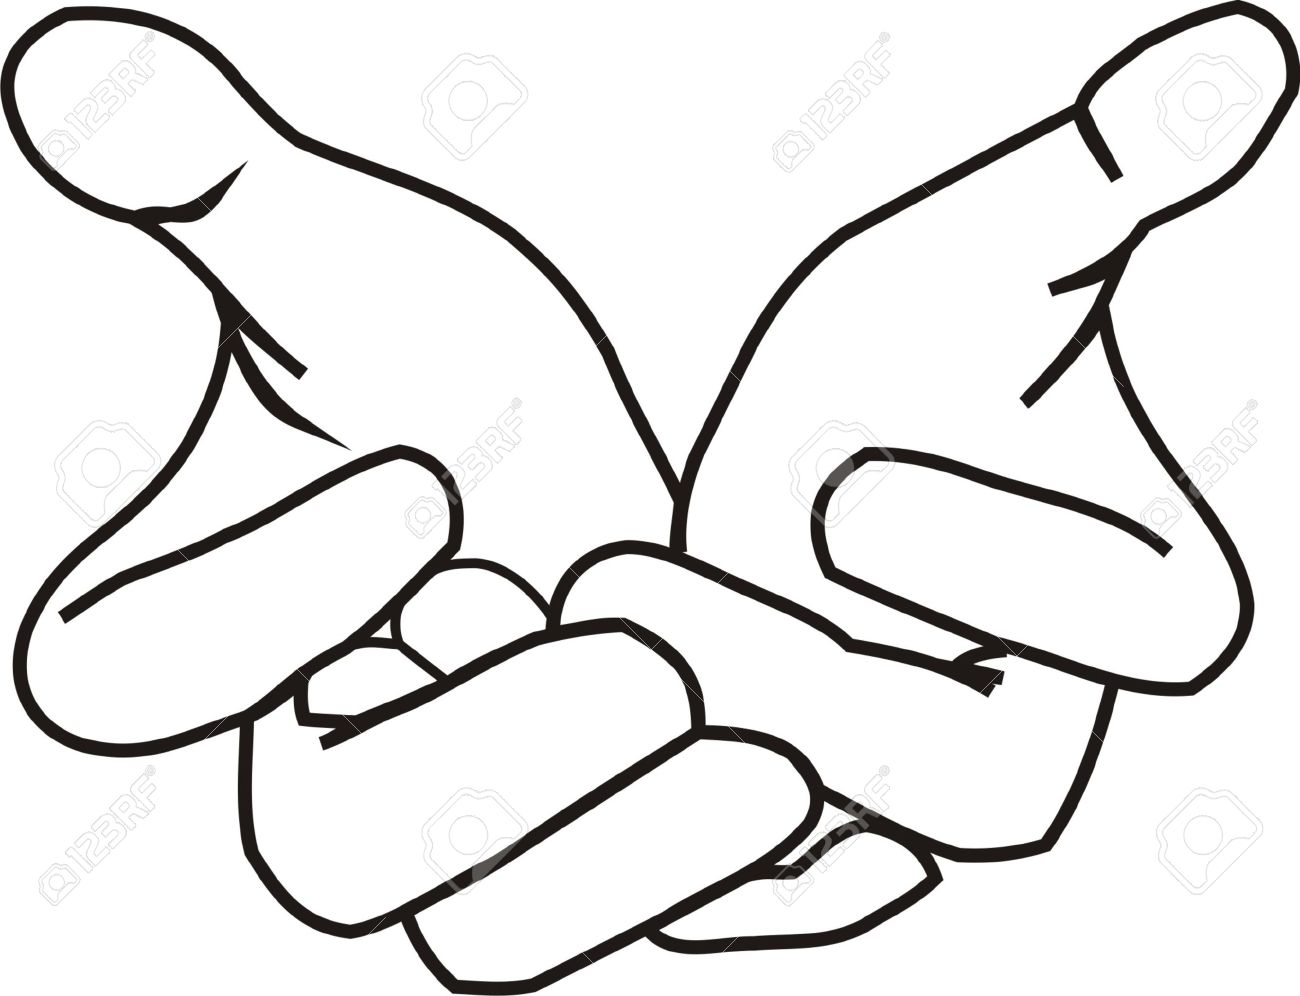 giving hands lineart royalty free cliparts vectors and stock rh 123rf com Hand Clip Art giving hands vector image